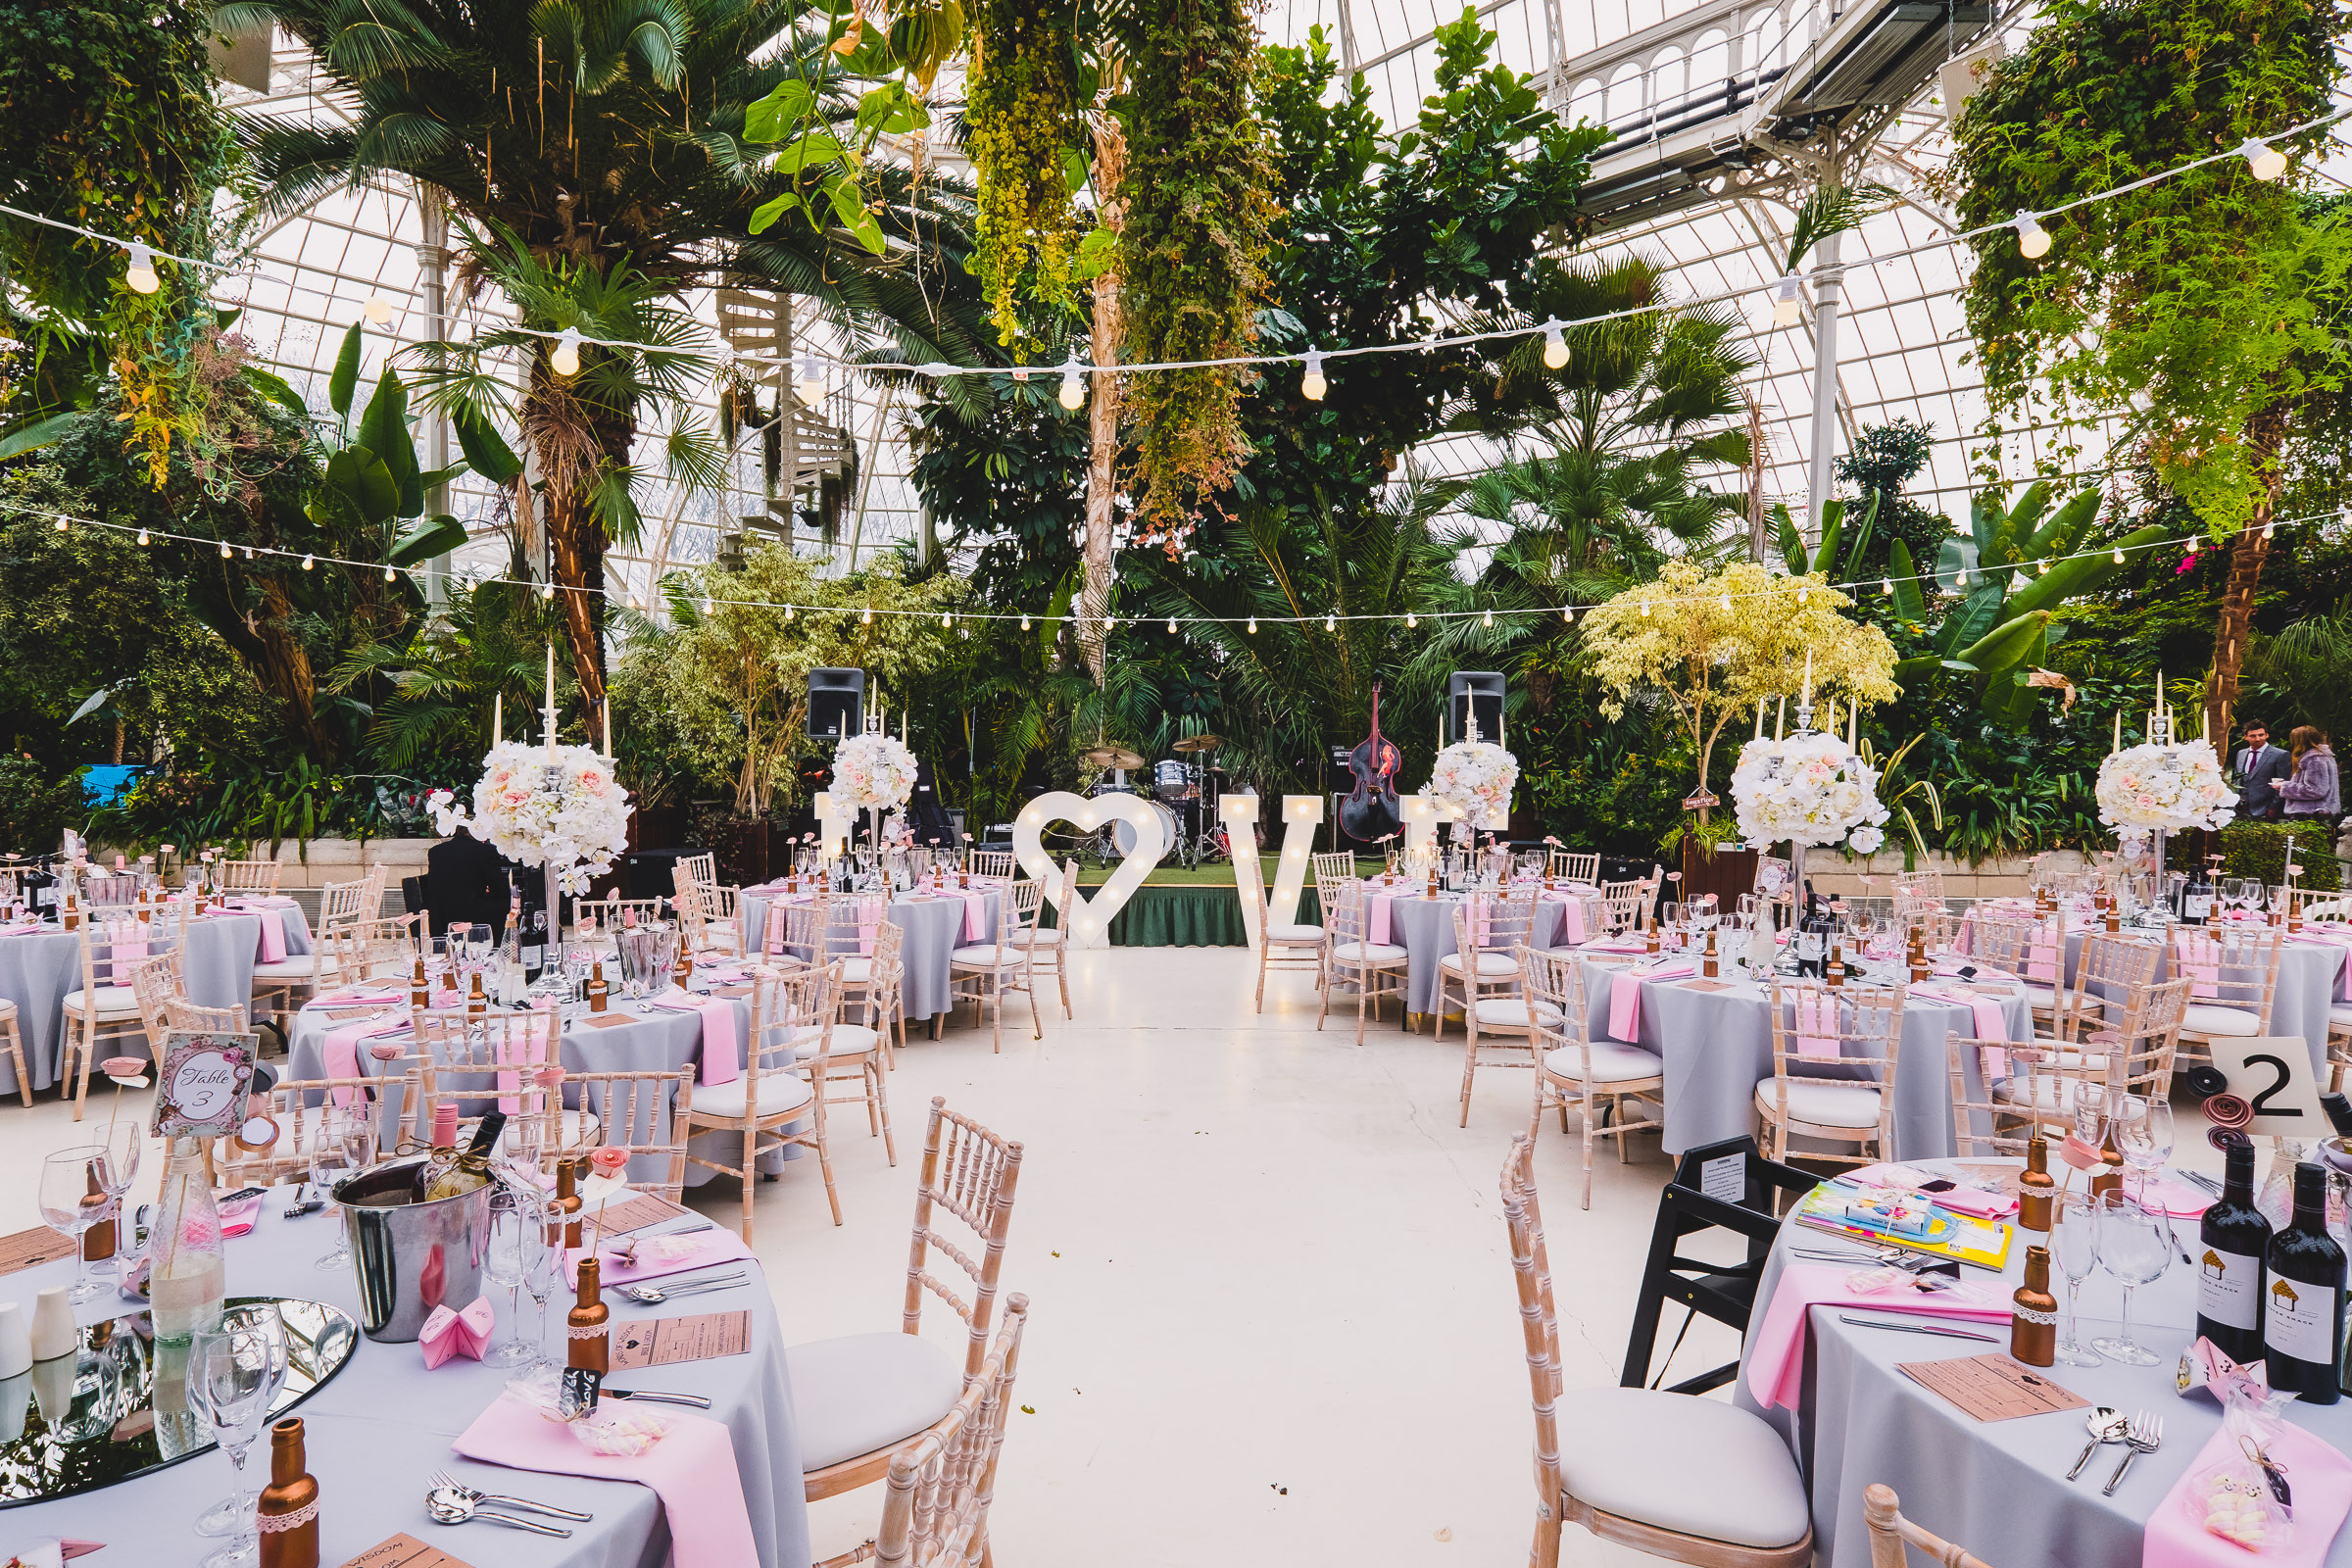 Dusty pink and grey against the beautiful greens of The Palm House, Sefton Park